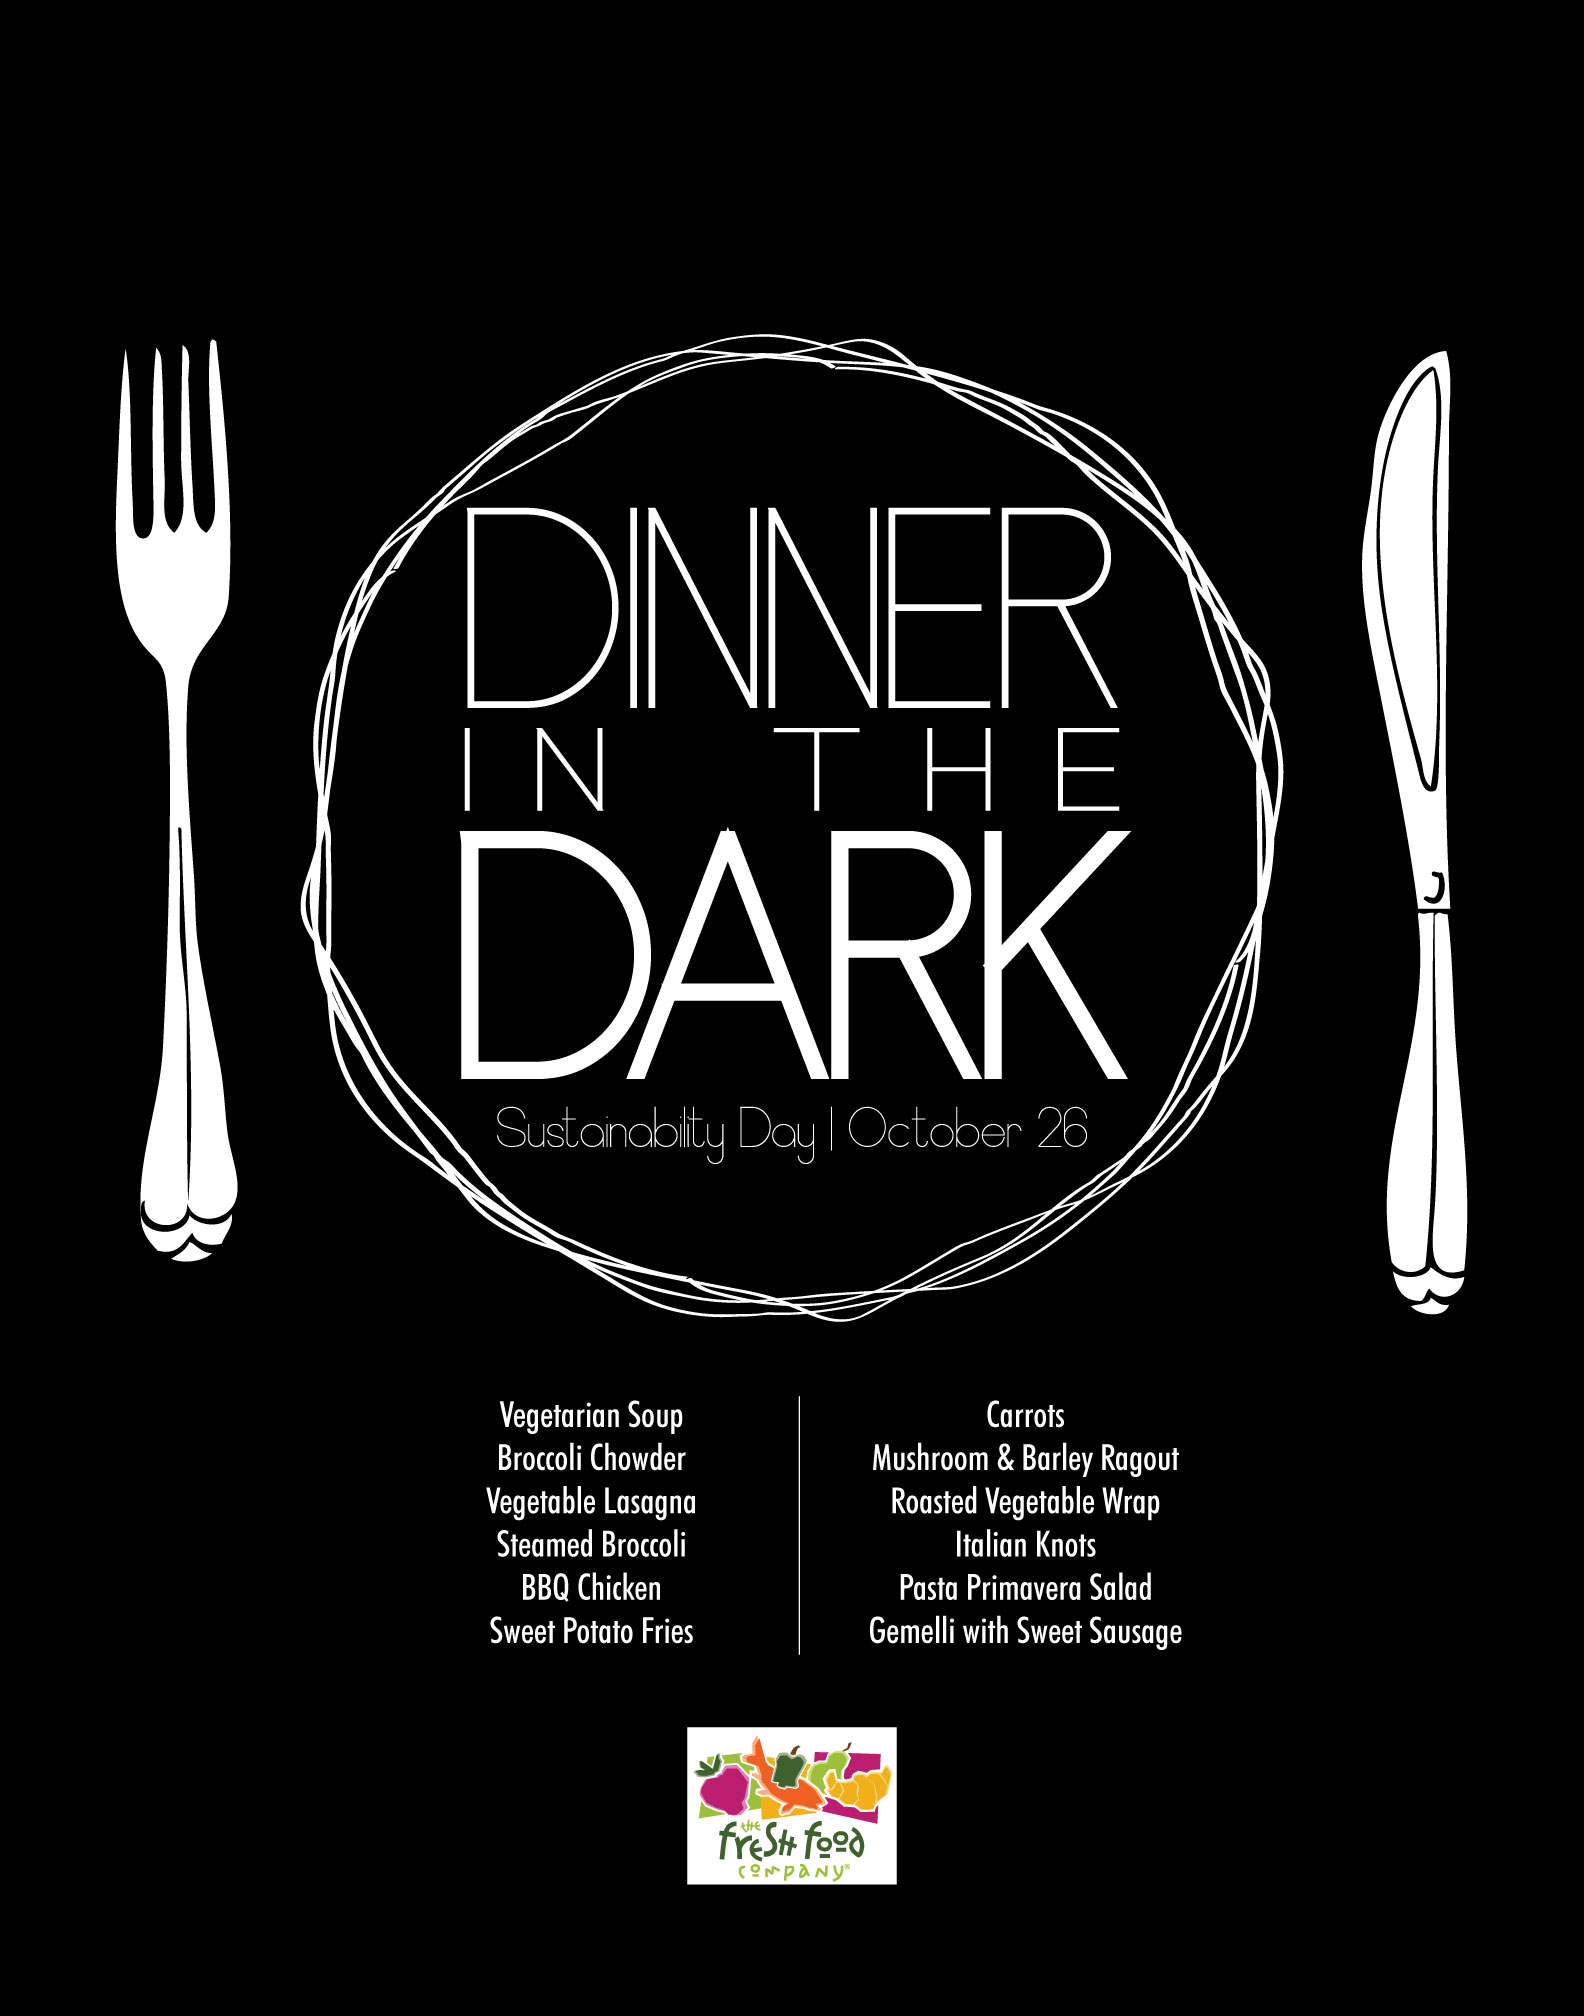 dinner-in-the-dark-poster-10_2011